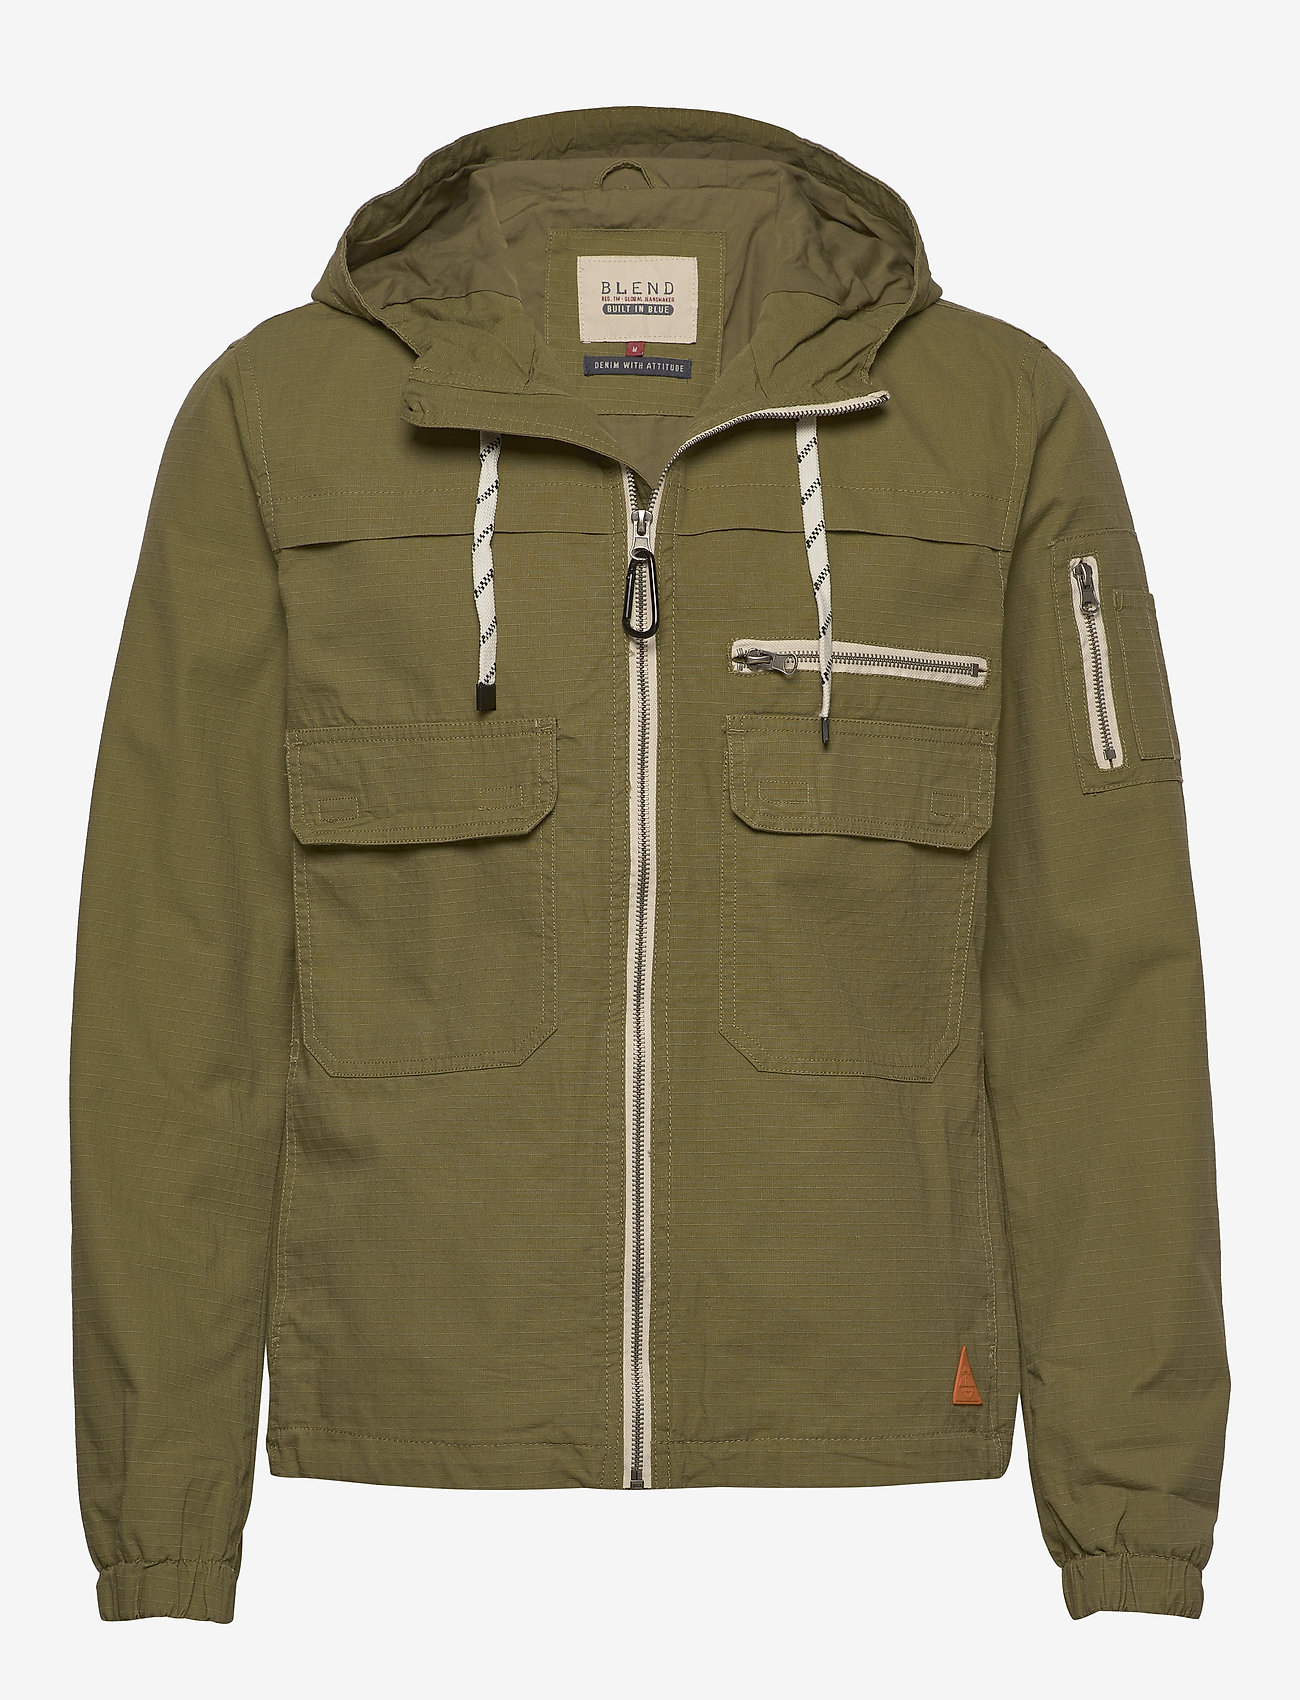 Outerwear (Martini Olive) (59.96 €) Blend |